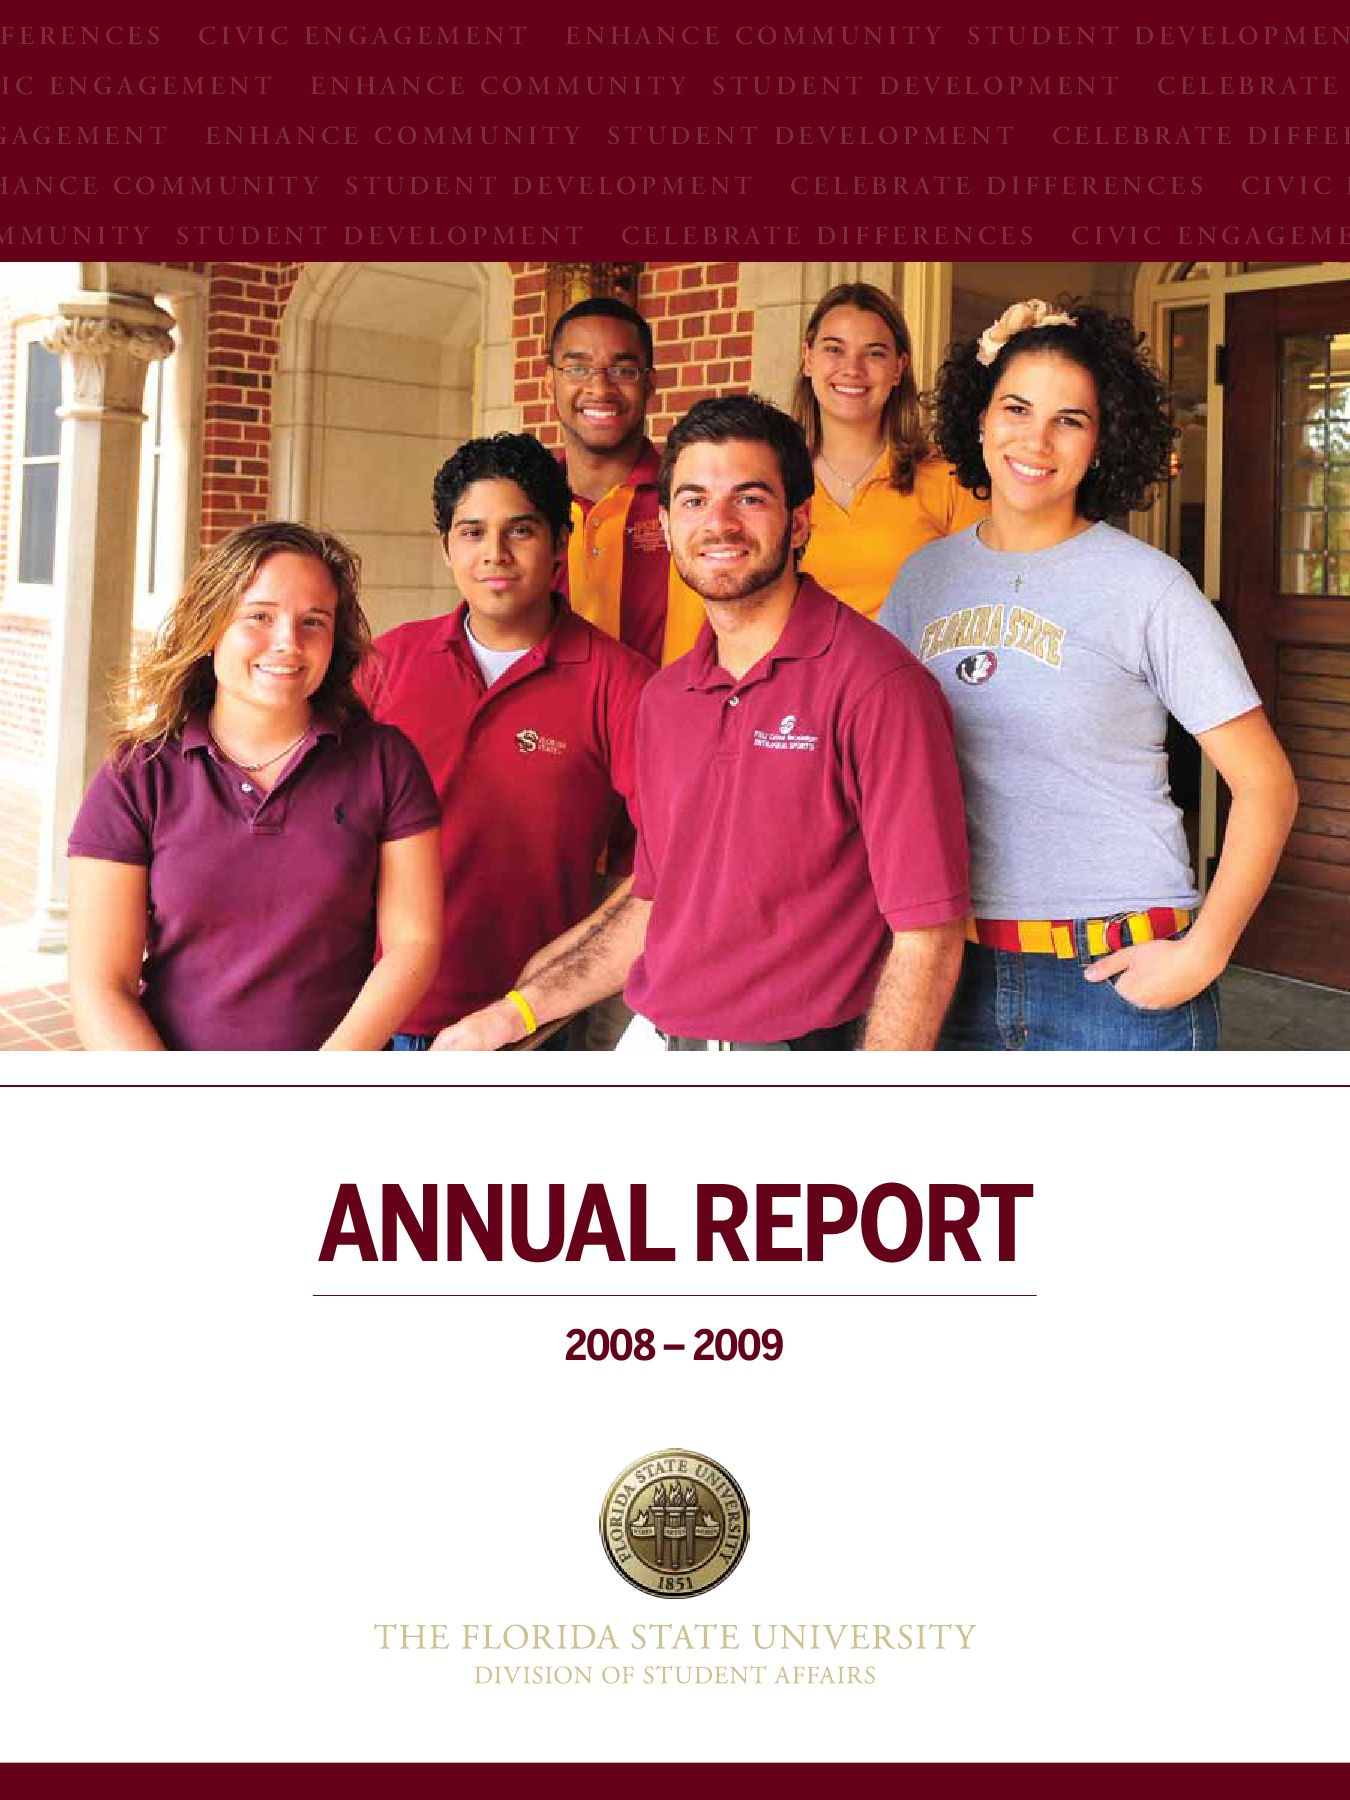 Fsu Division Of Student Affairs Annual Report 2008 2009 By Florida State University Division Of Student Affairs Issuu